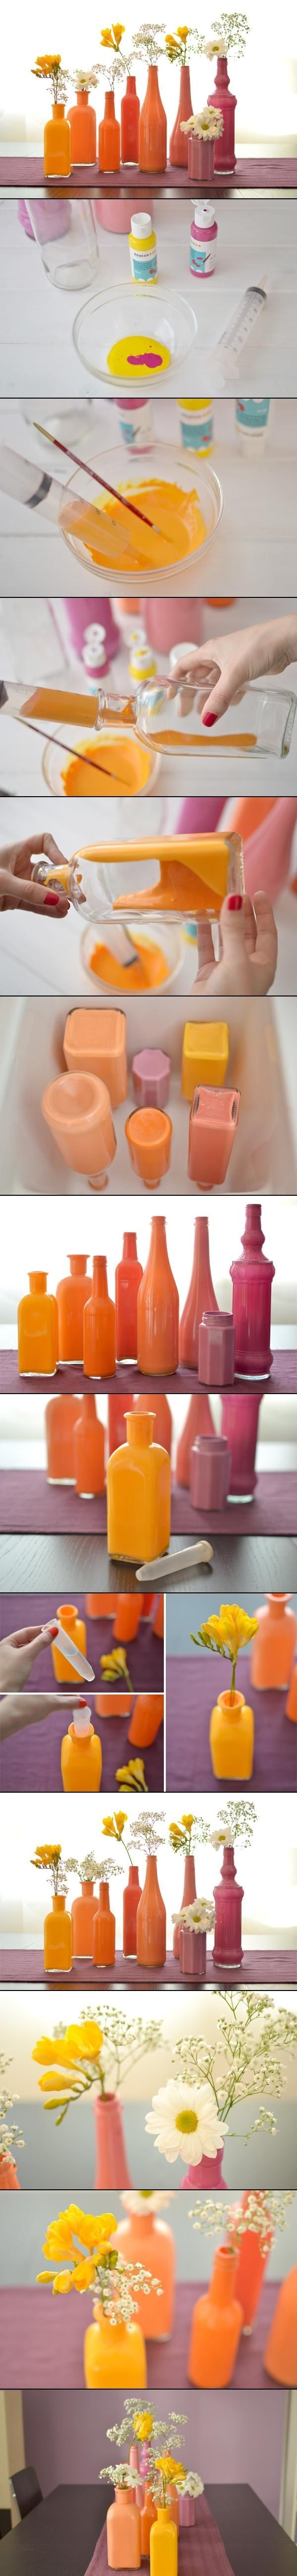 Painted bottles by Allison Fasnacht